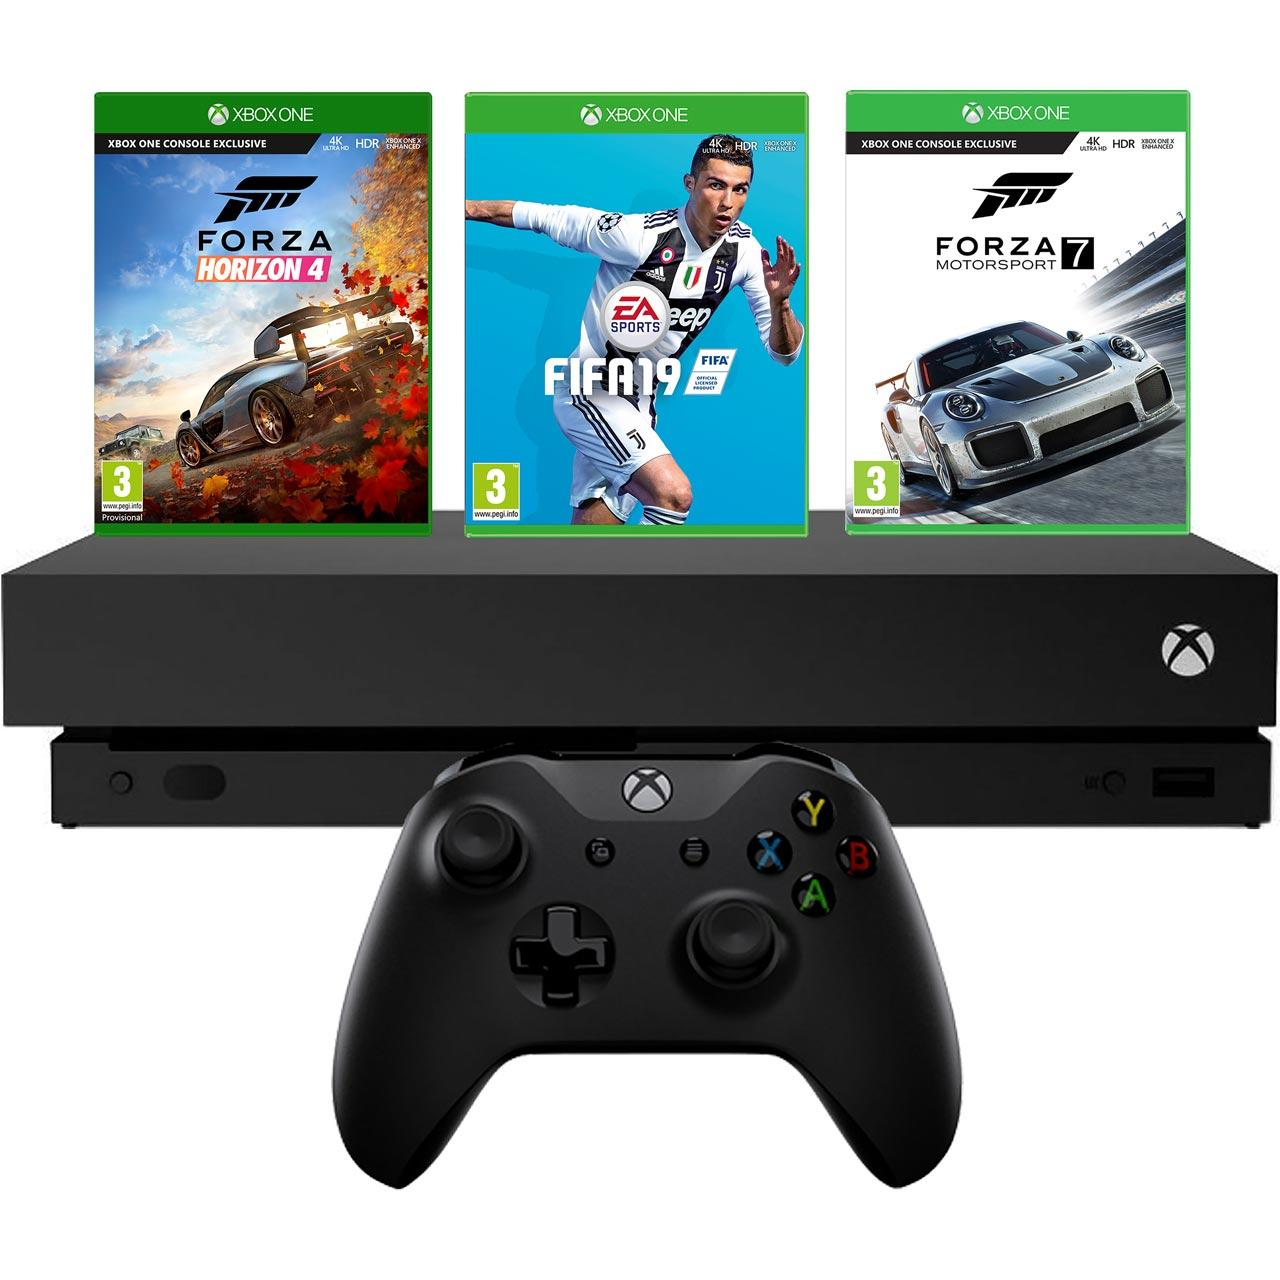 microsoft xbox one x 1tb juodas forza horizon 4 forza. Black Bedroom Furniture Sets. Home Design Ideas